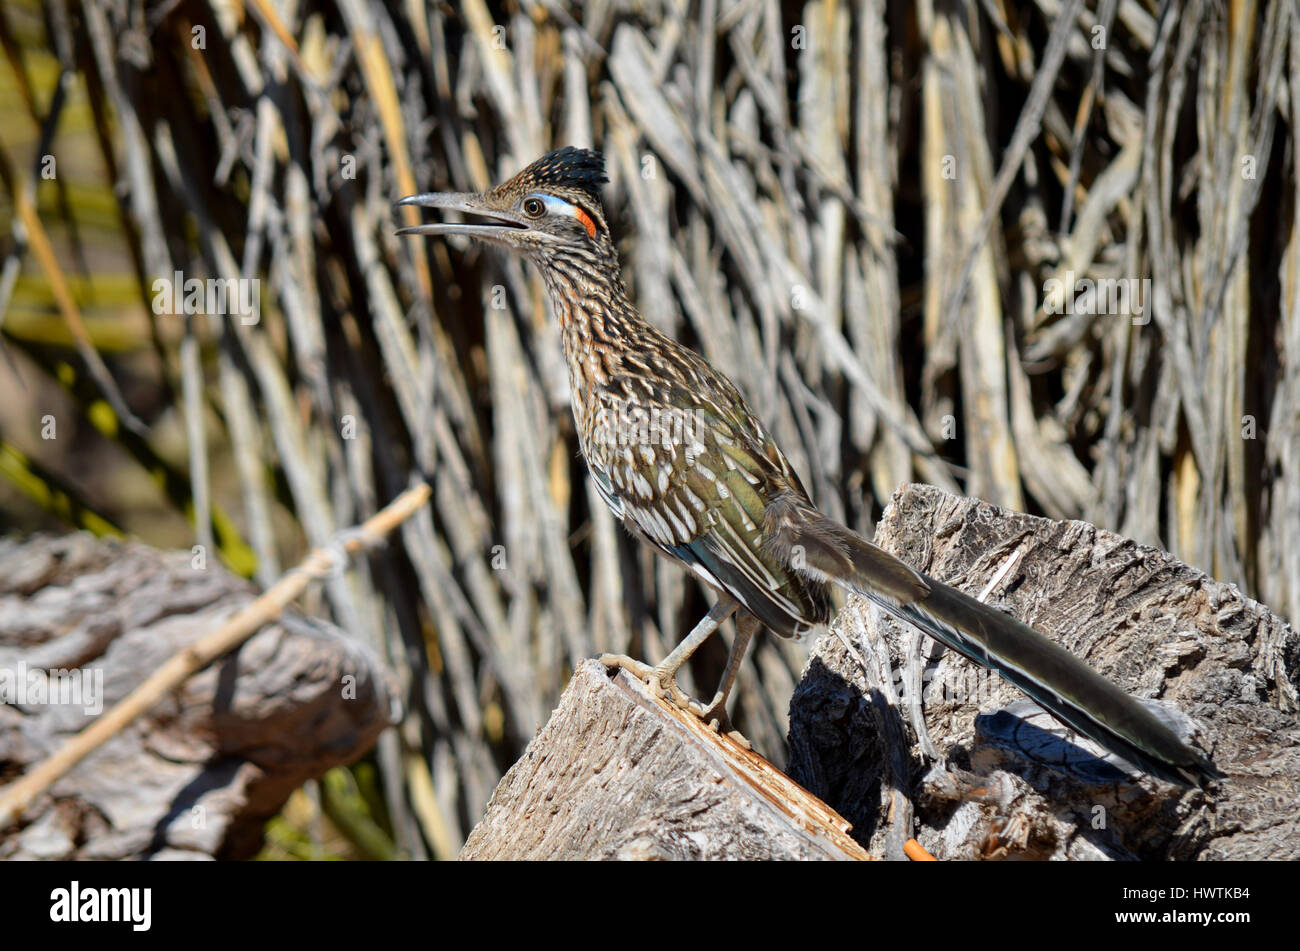 A Greater roadrunner hanging out in my backyard in Apple Valley California. - Stock Image